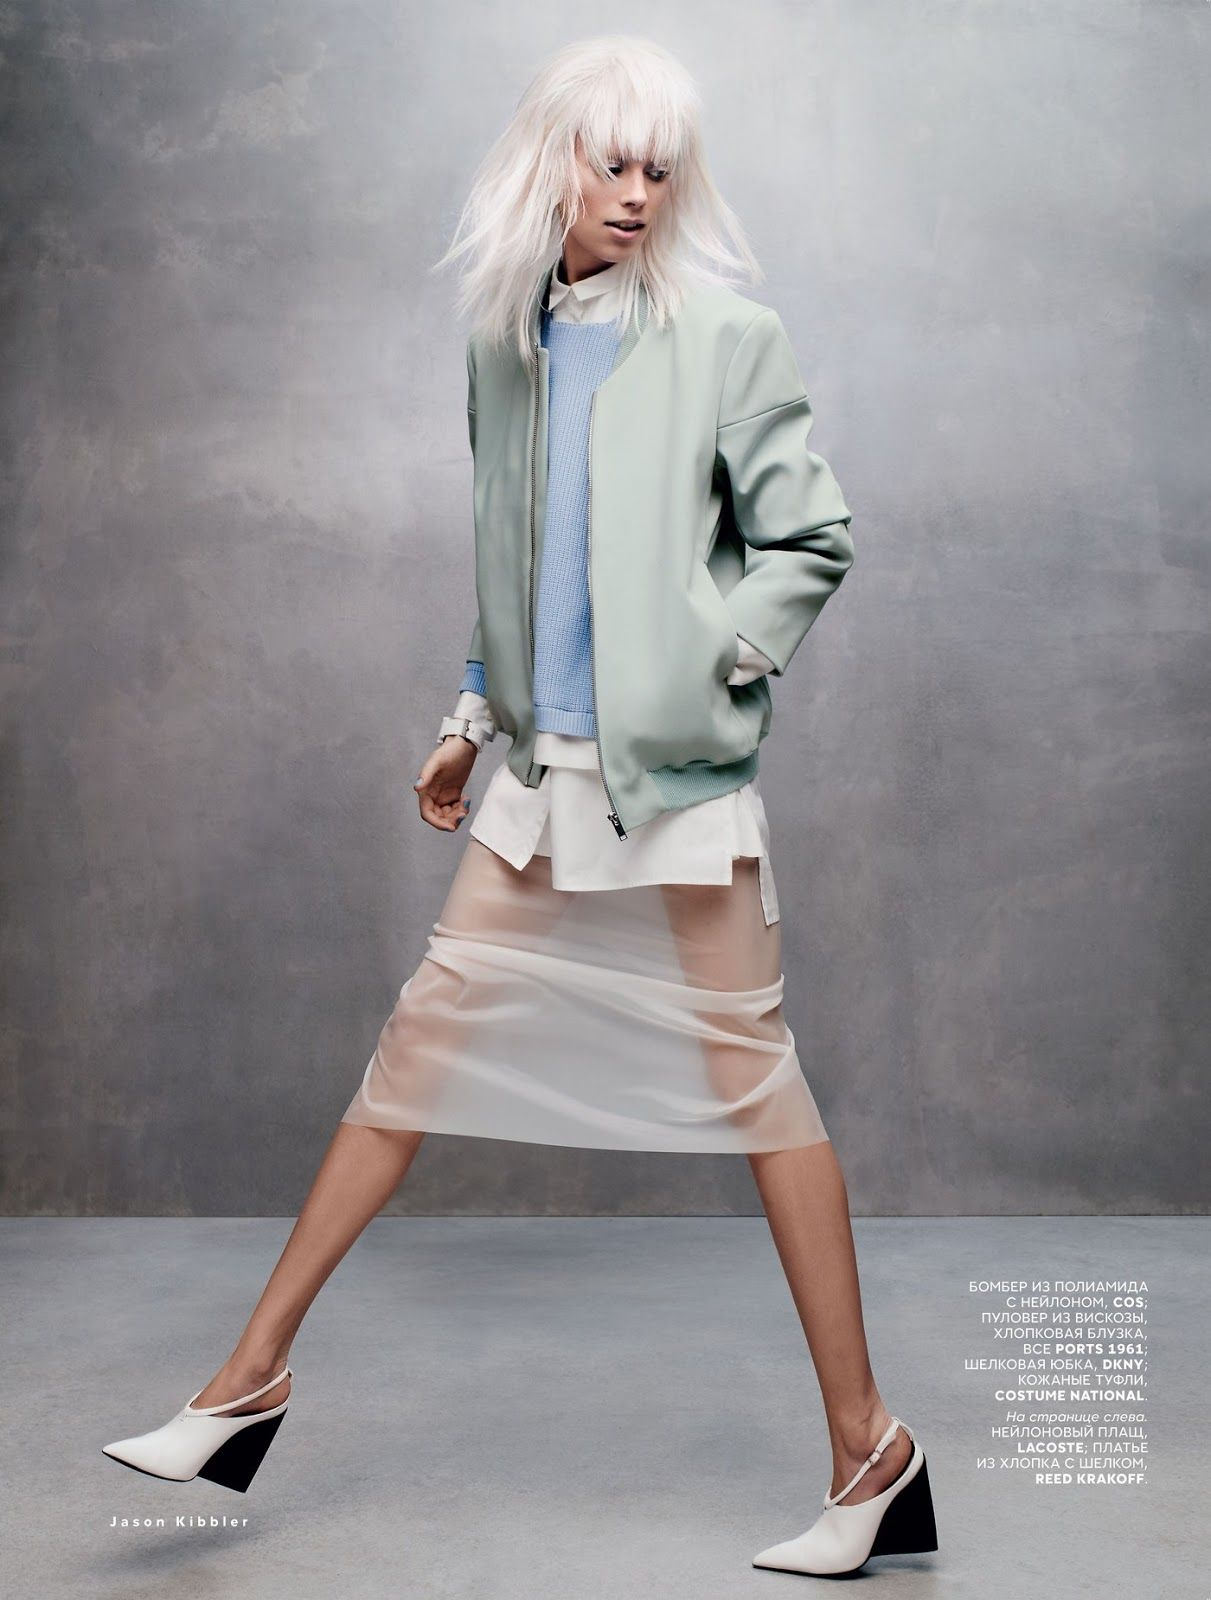 Lexi Boling by Jason Kibbler for Vogue Russia March 2014